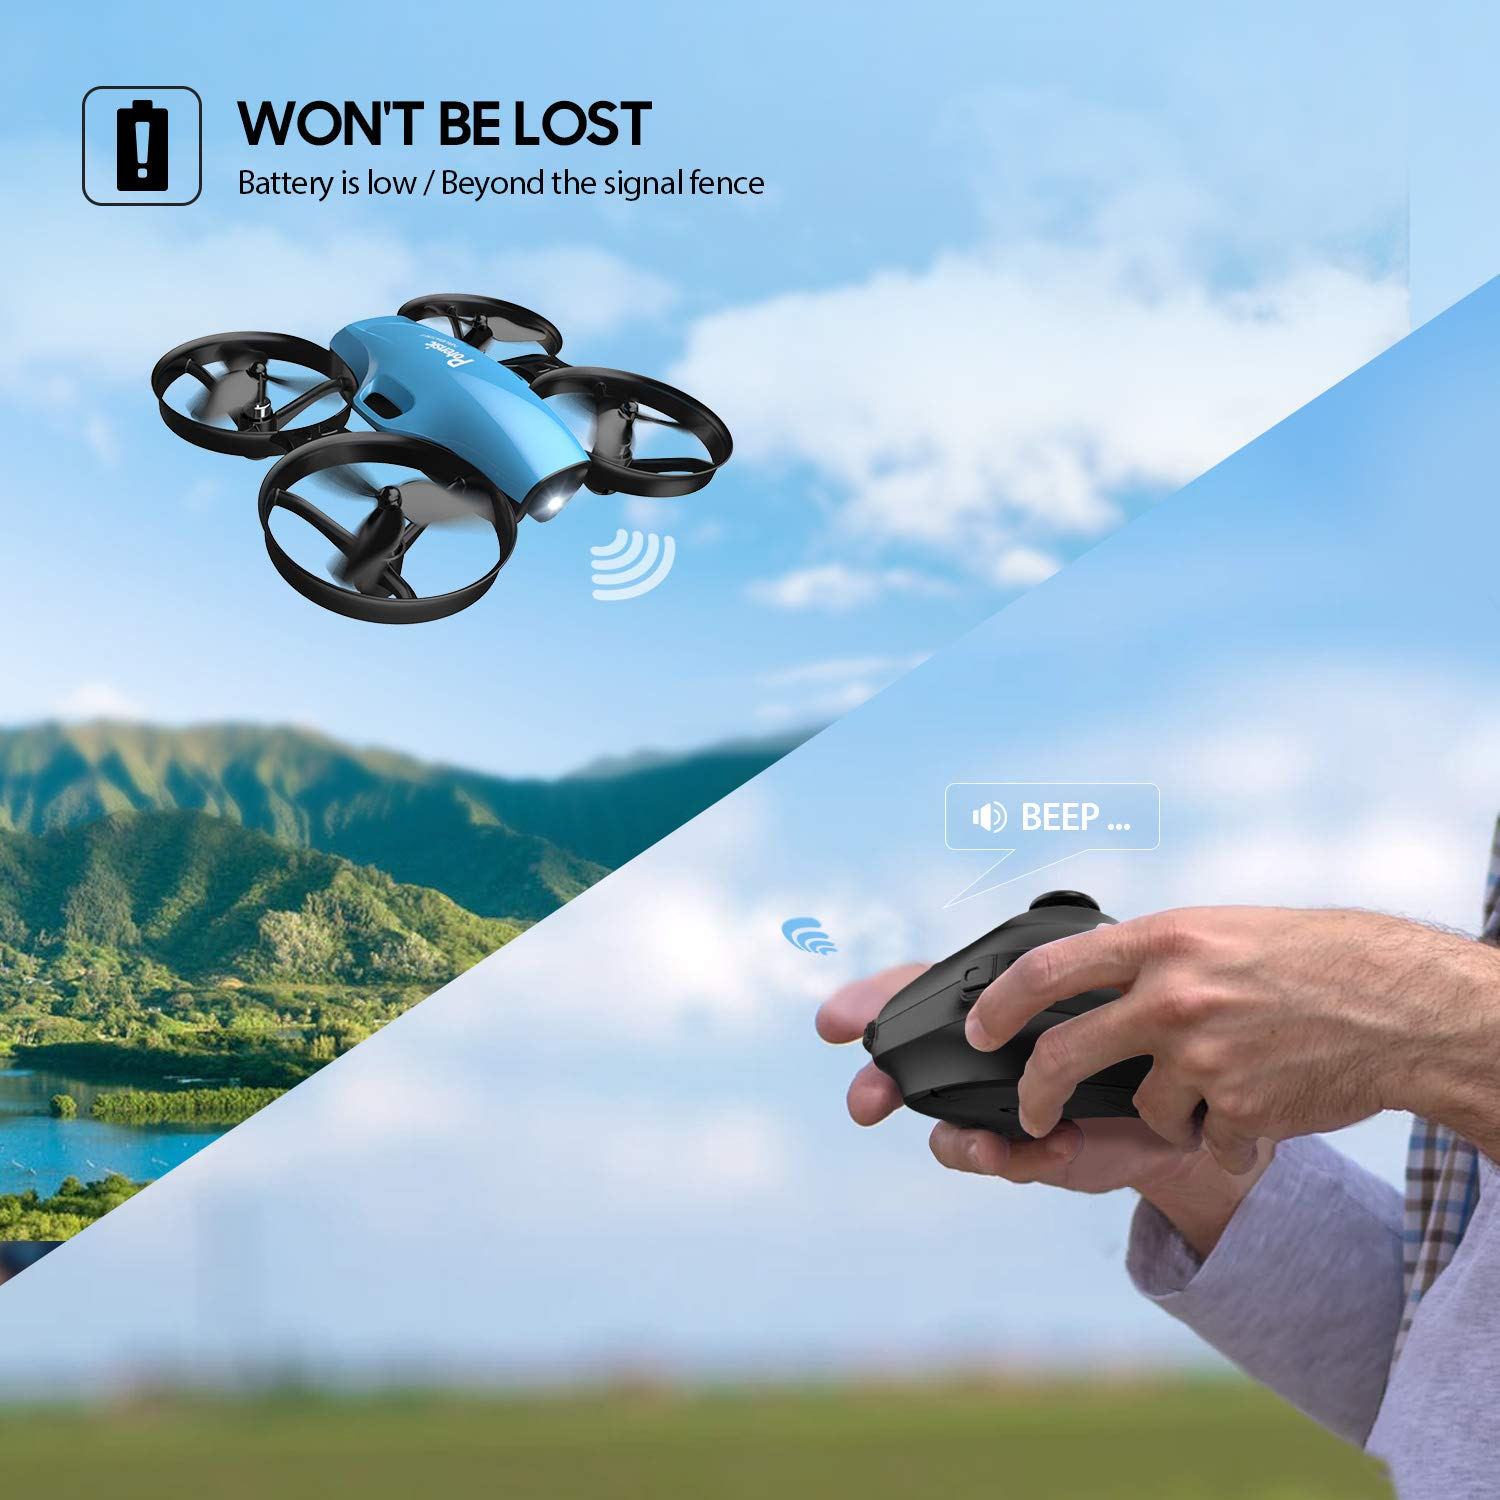 Mini Drone, RC Quadcopter, Potensic A30 One Key Take-Off/Land,Emergency Stopped, Altitude Hold,Auto Hovering,Drone for Kids (Blue) by Potensic (Image #7)